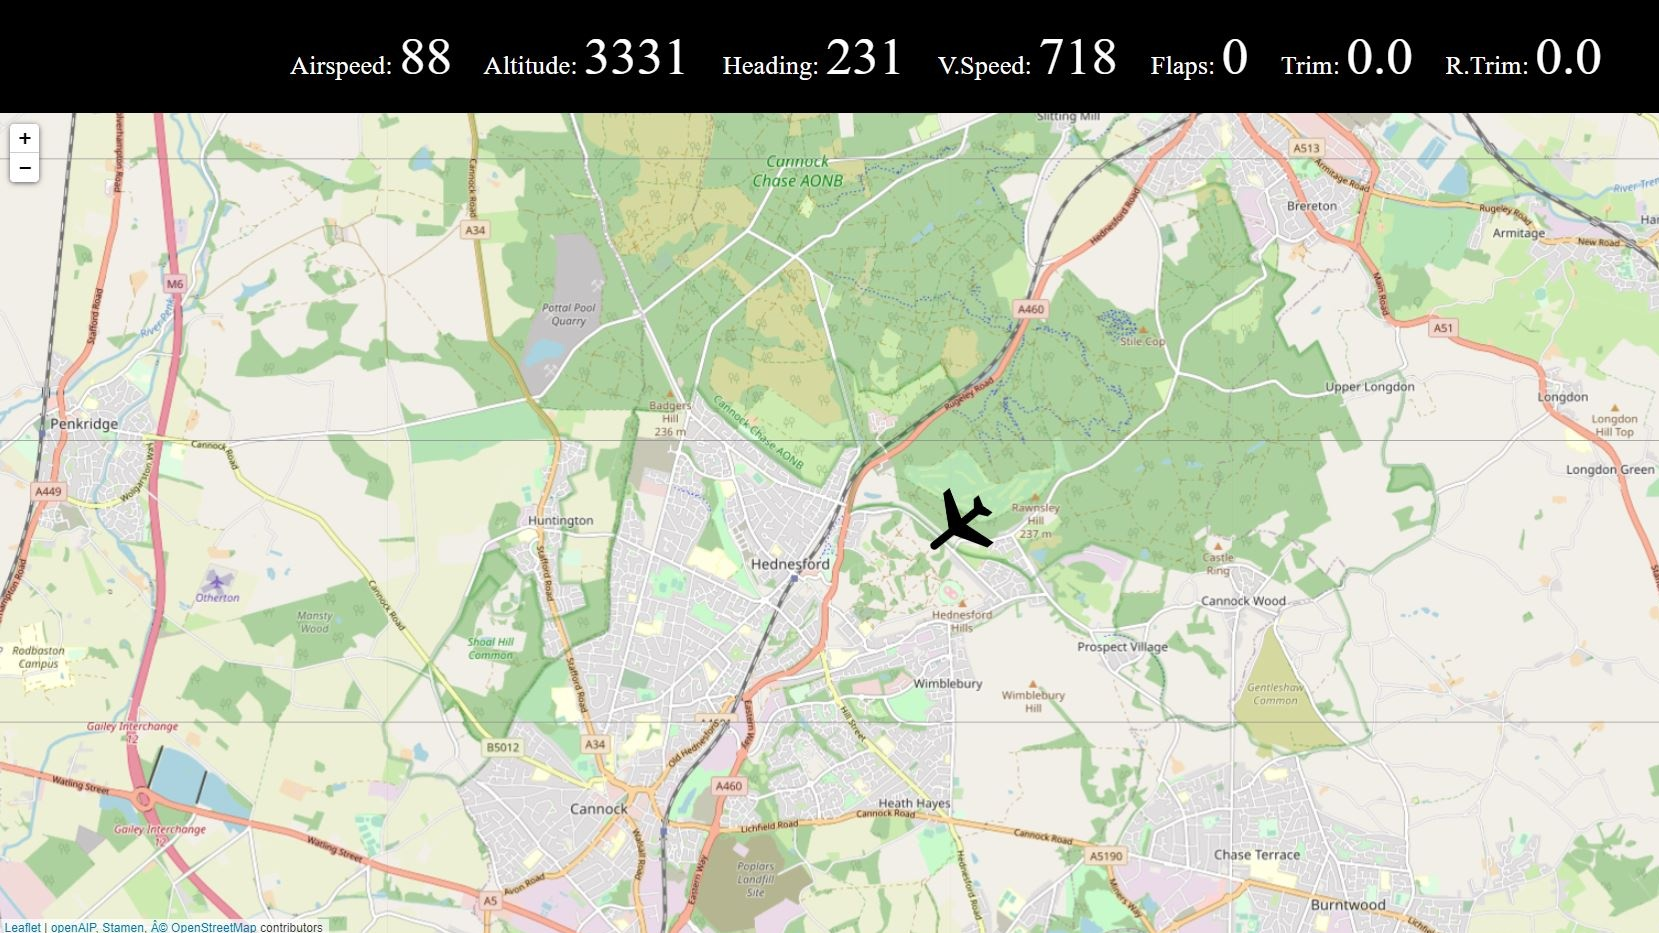 A screenshot of VFRMap. The addon shows an Open Street Map image with a plane icon overlaid